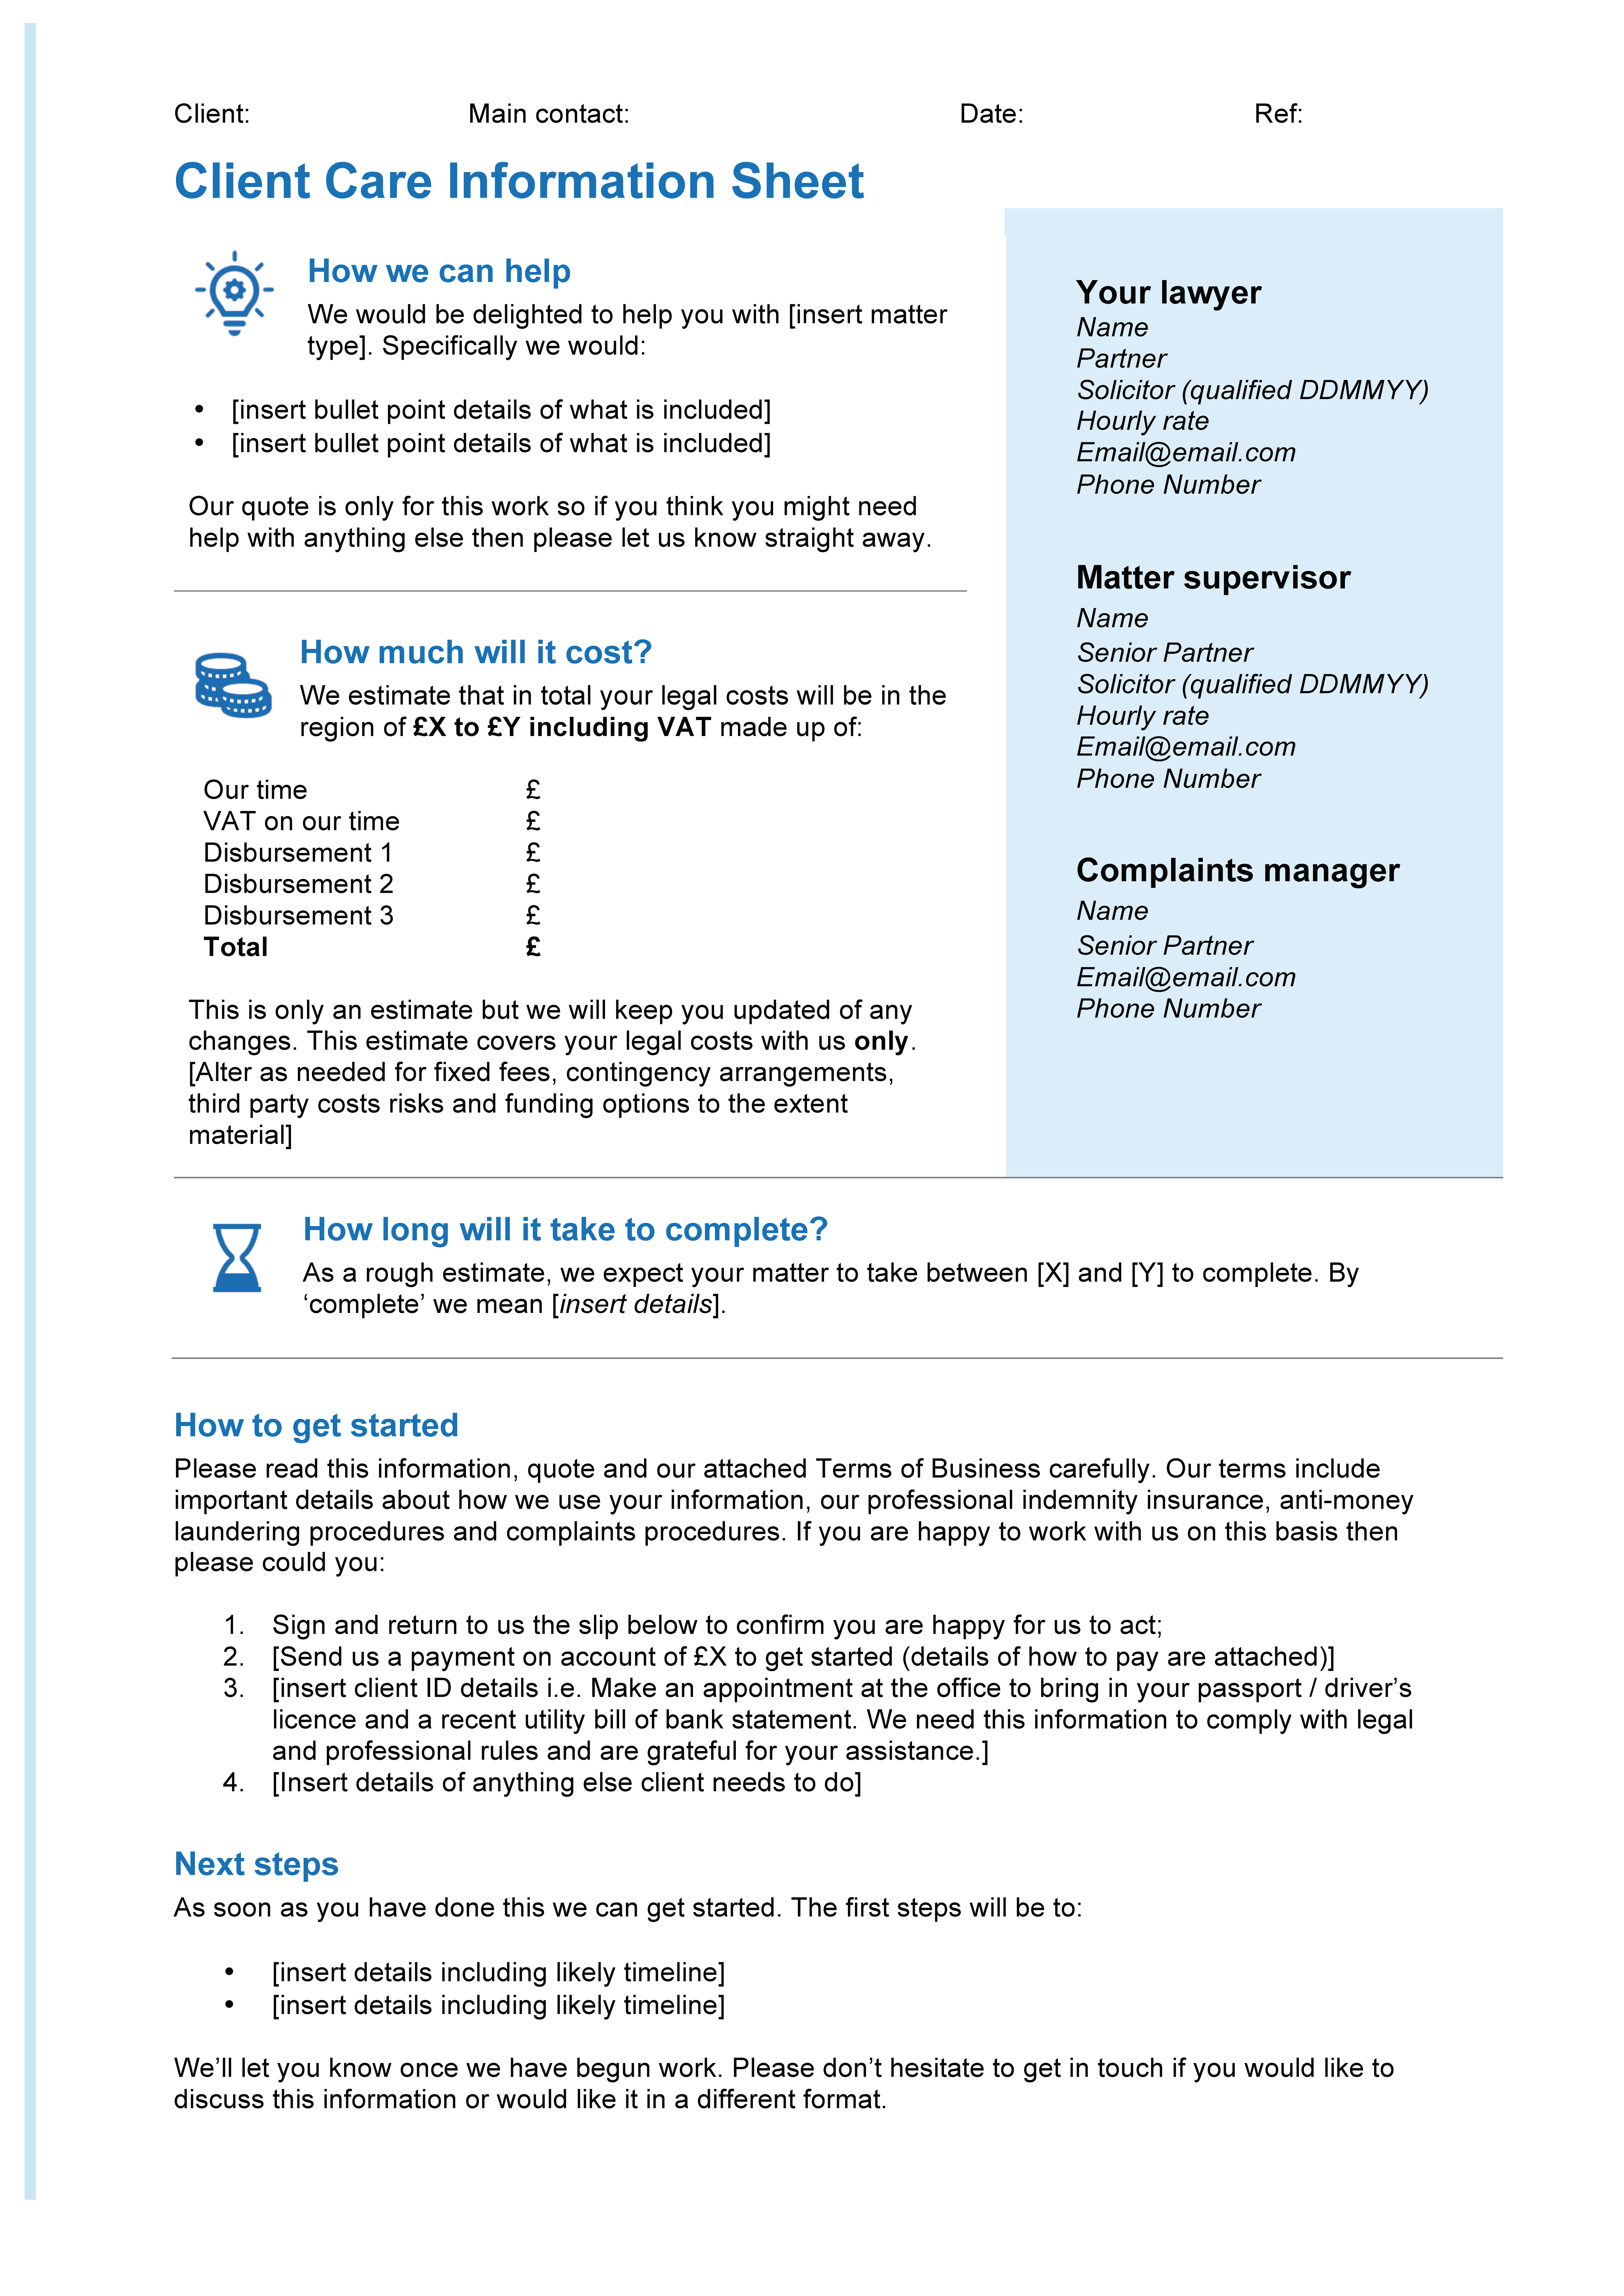 Template Client Care Letter for solicitors example image